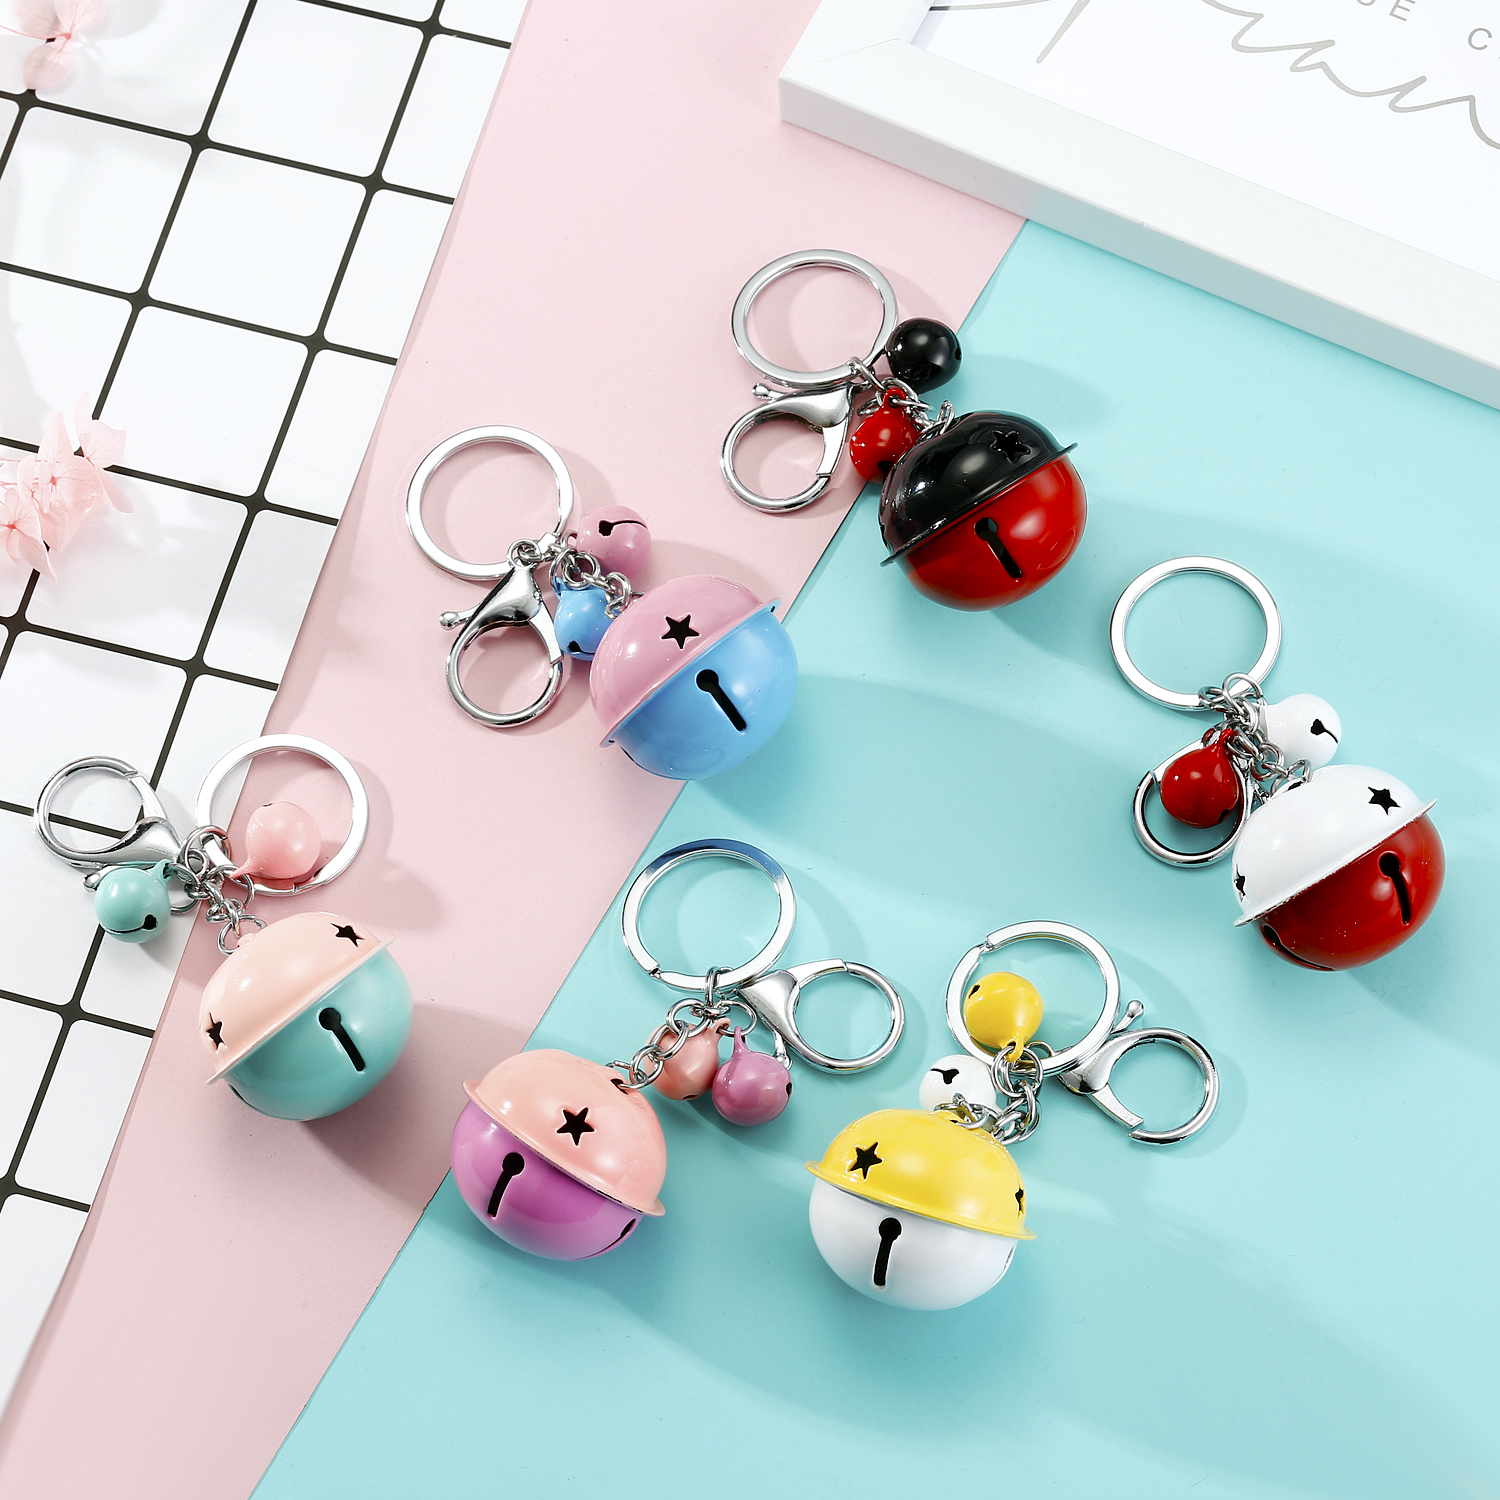 1PC Korea Big Double Bells Keychain Keyring For Women Jewelry Colorful Handbag Keyring Birthday Gift K148